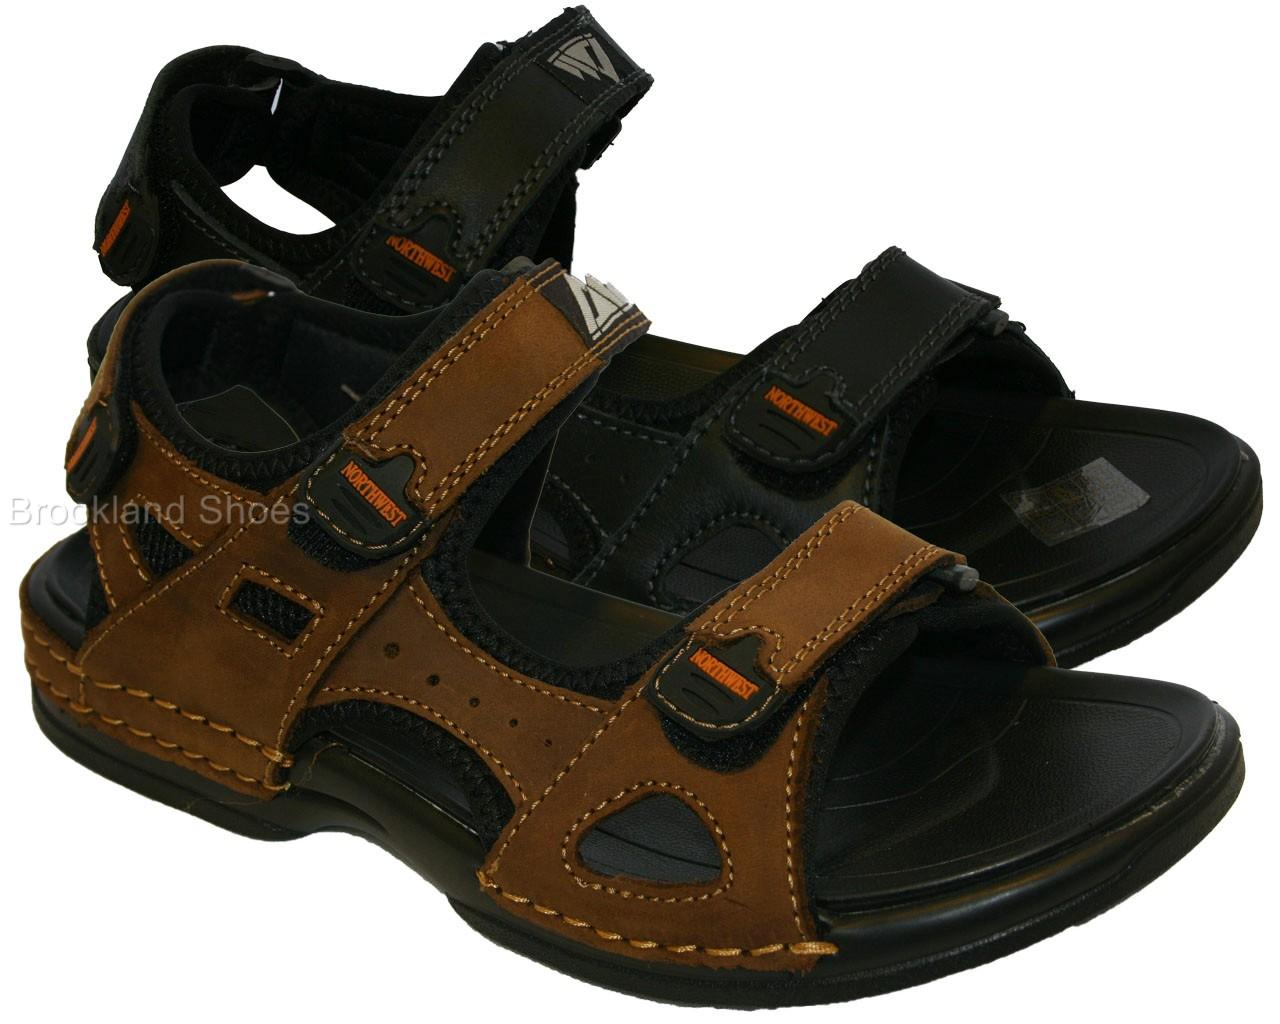 Jesus Sandals Deals On 1001 Blocks